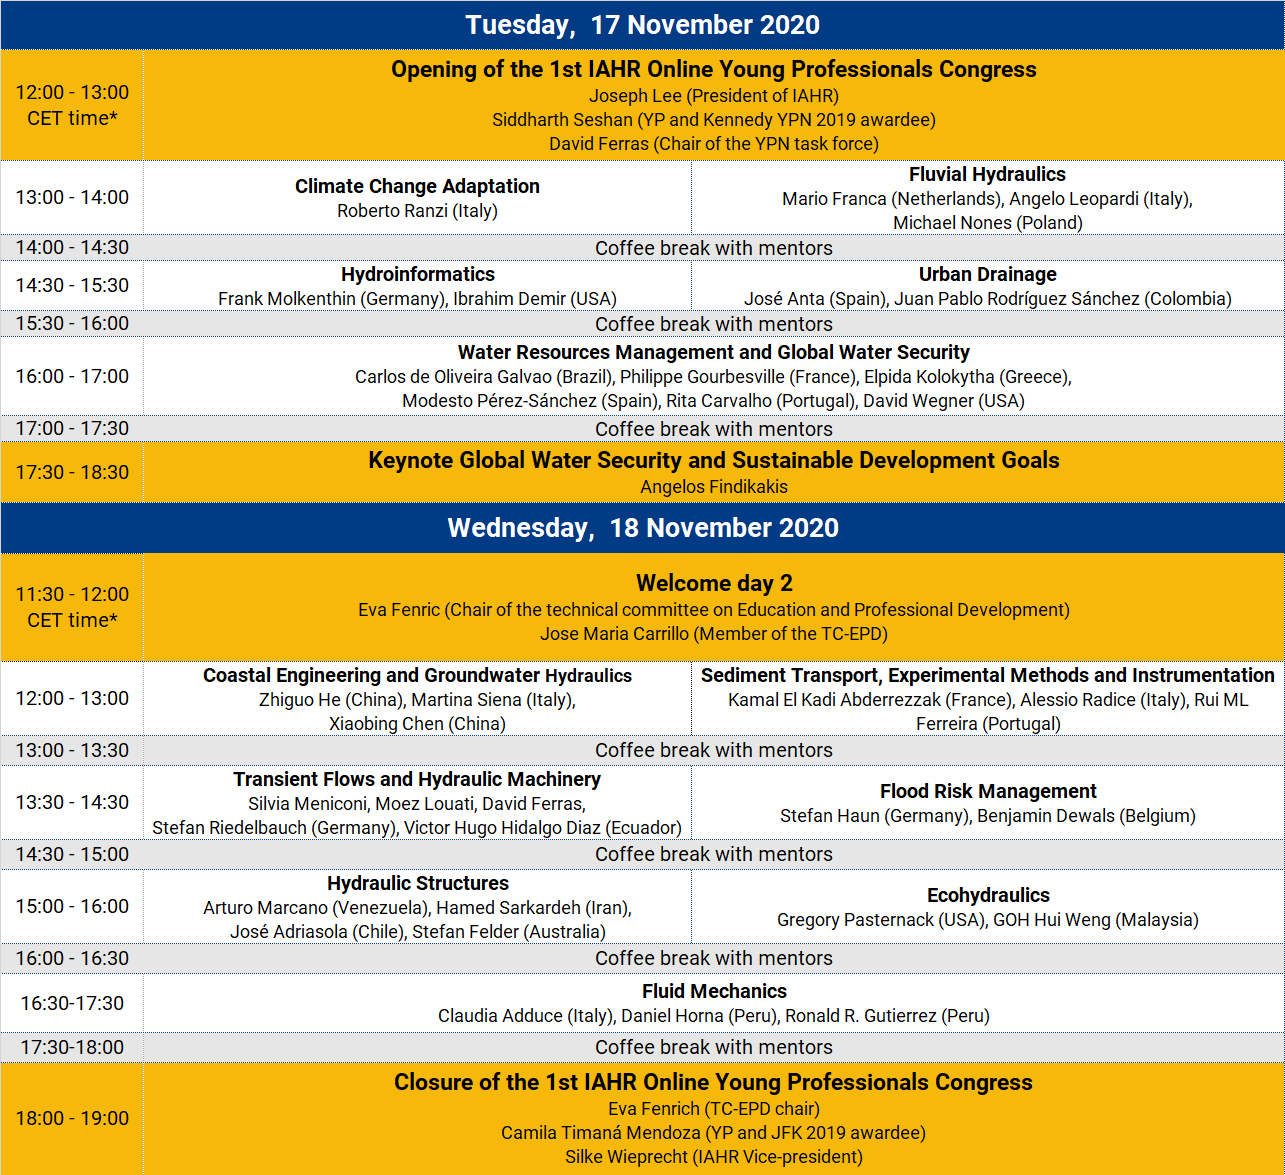 Programme of the 1st IAHR Young Professionals Congress